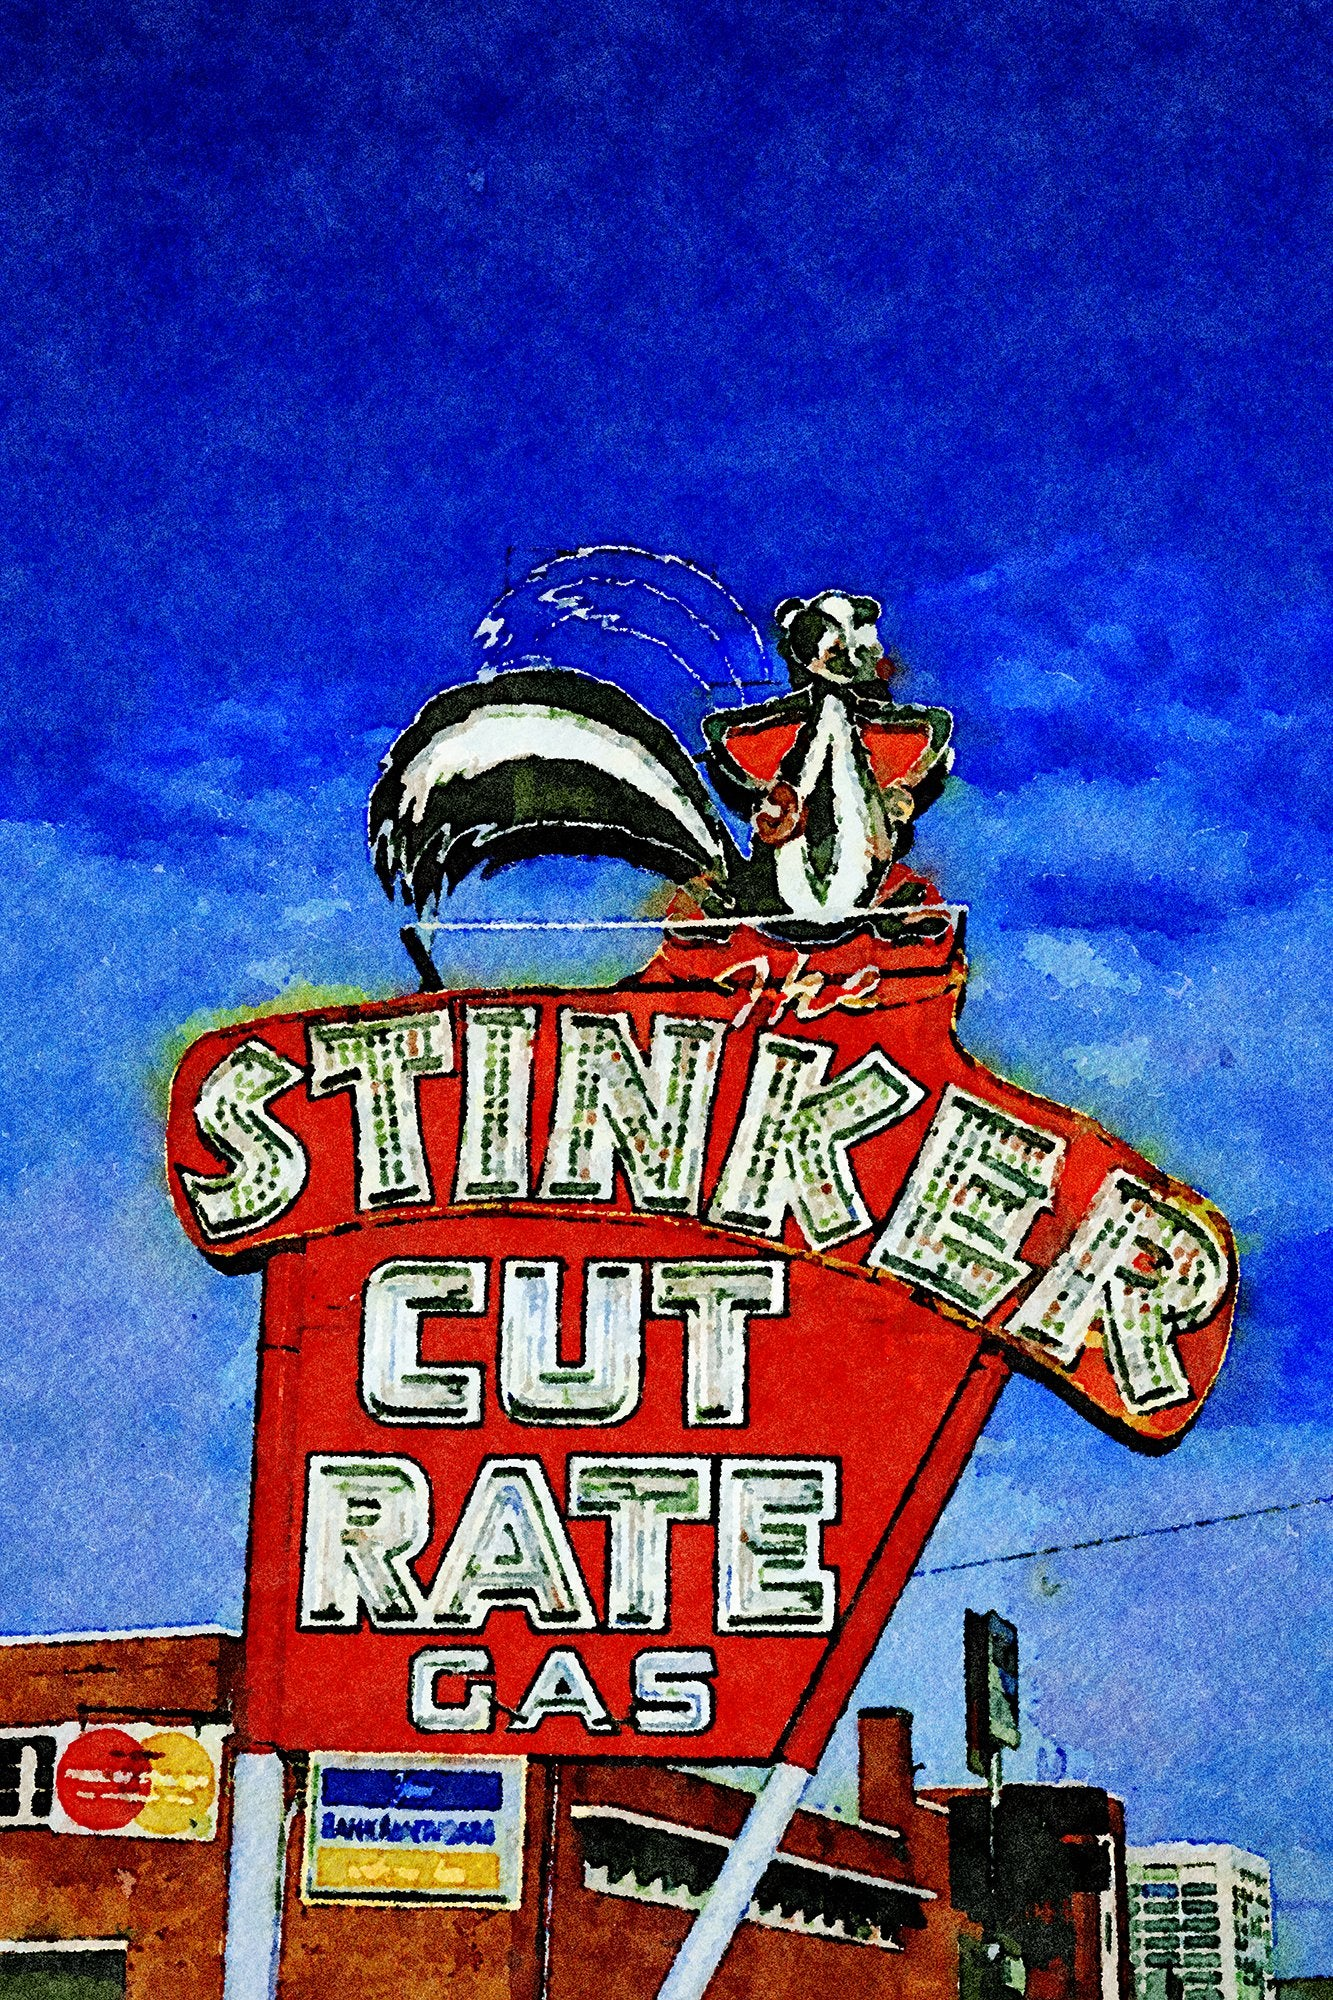 Stinker Cut Rate Gas Sign, Boise, Idaho, Reworked, Series 1